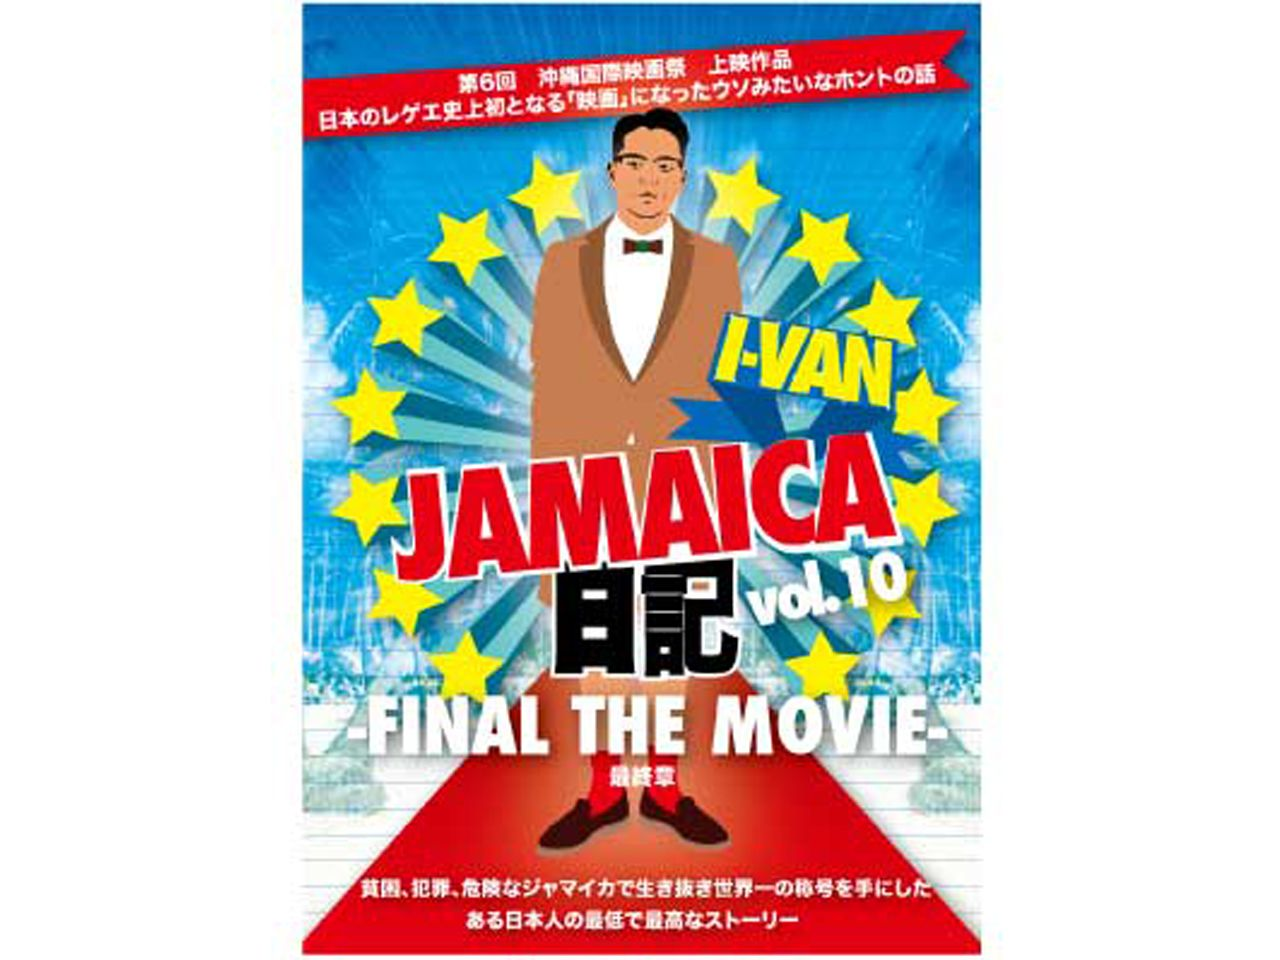 I-VAN JAMAICA日記 vol.10 ~FINAL THE MOVIE~ 最終章  -I-VAN-